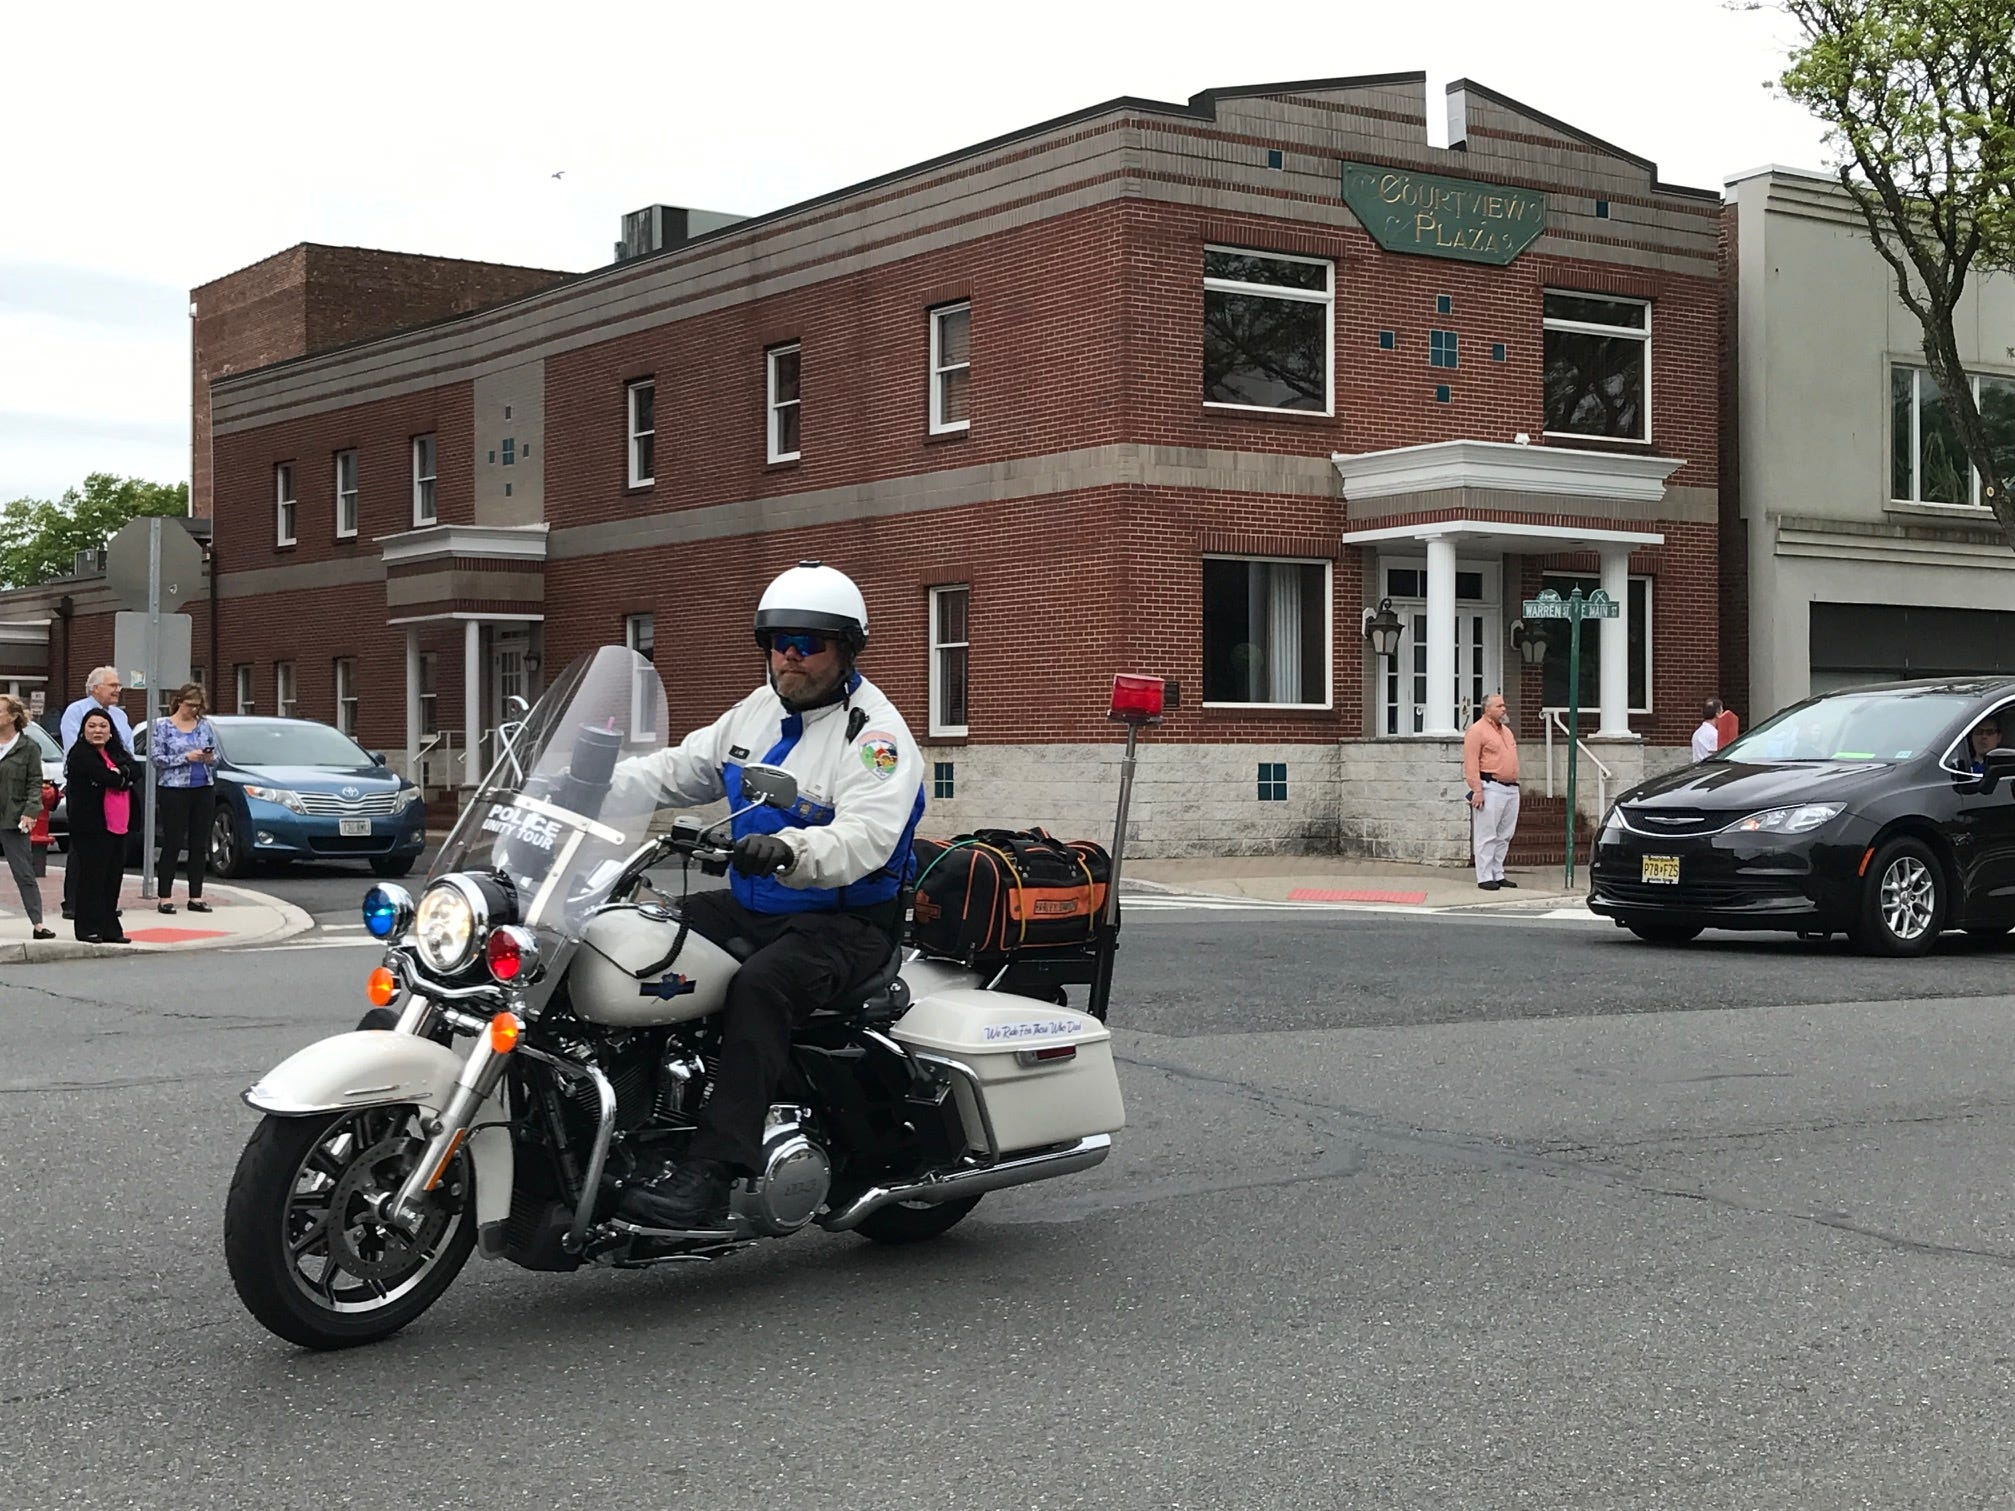 A motorcycle helps lead the Police Unity Tour that traveled through Somerville on Thursday.